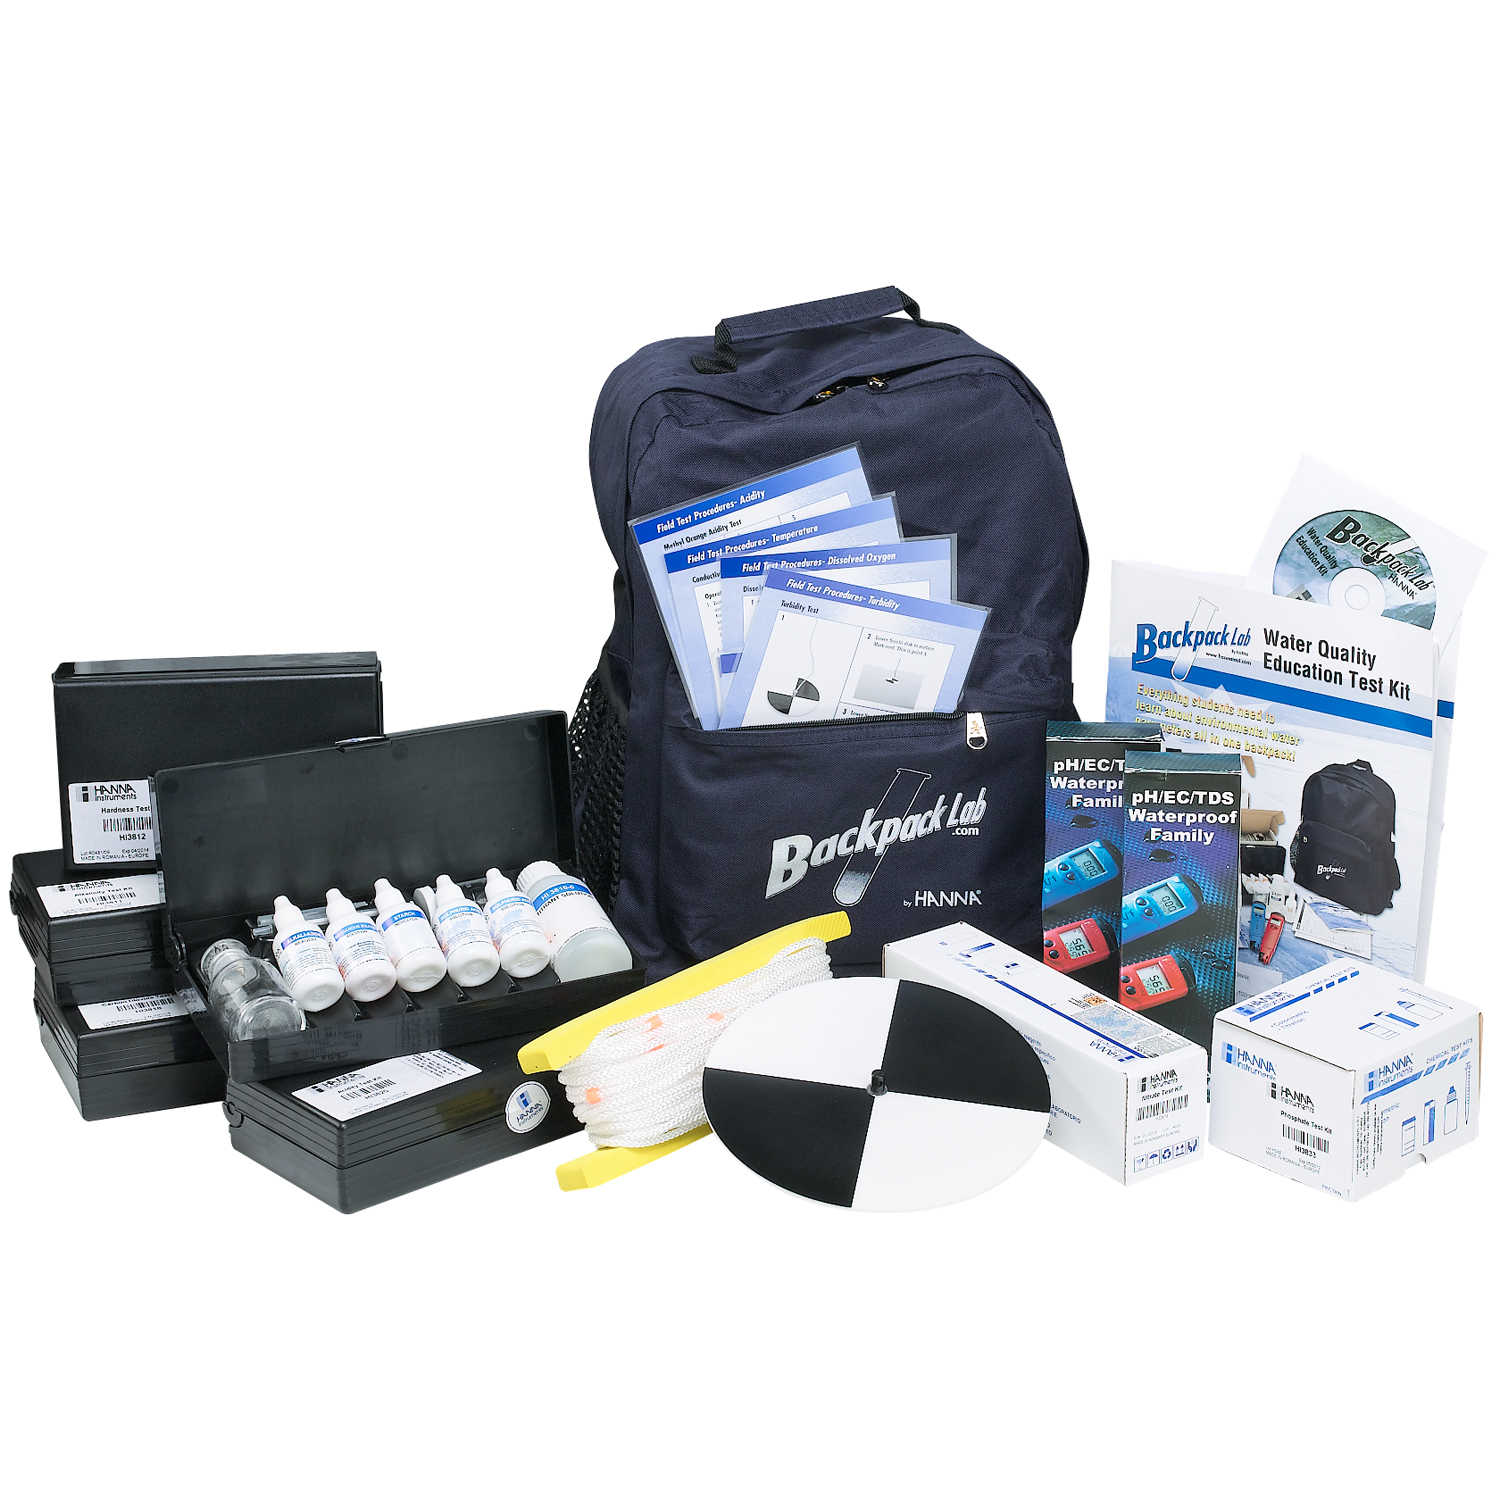 Hanna Instruments Backpack Lab Marine Science Education